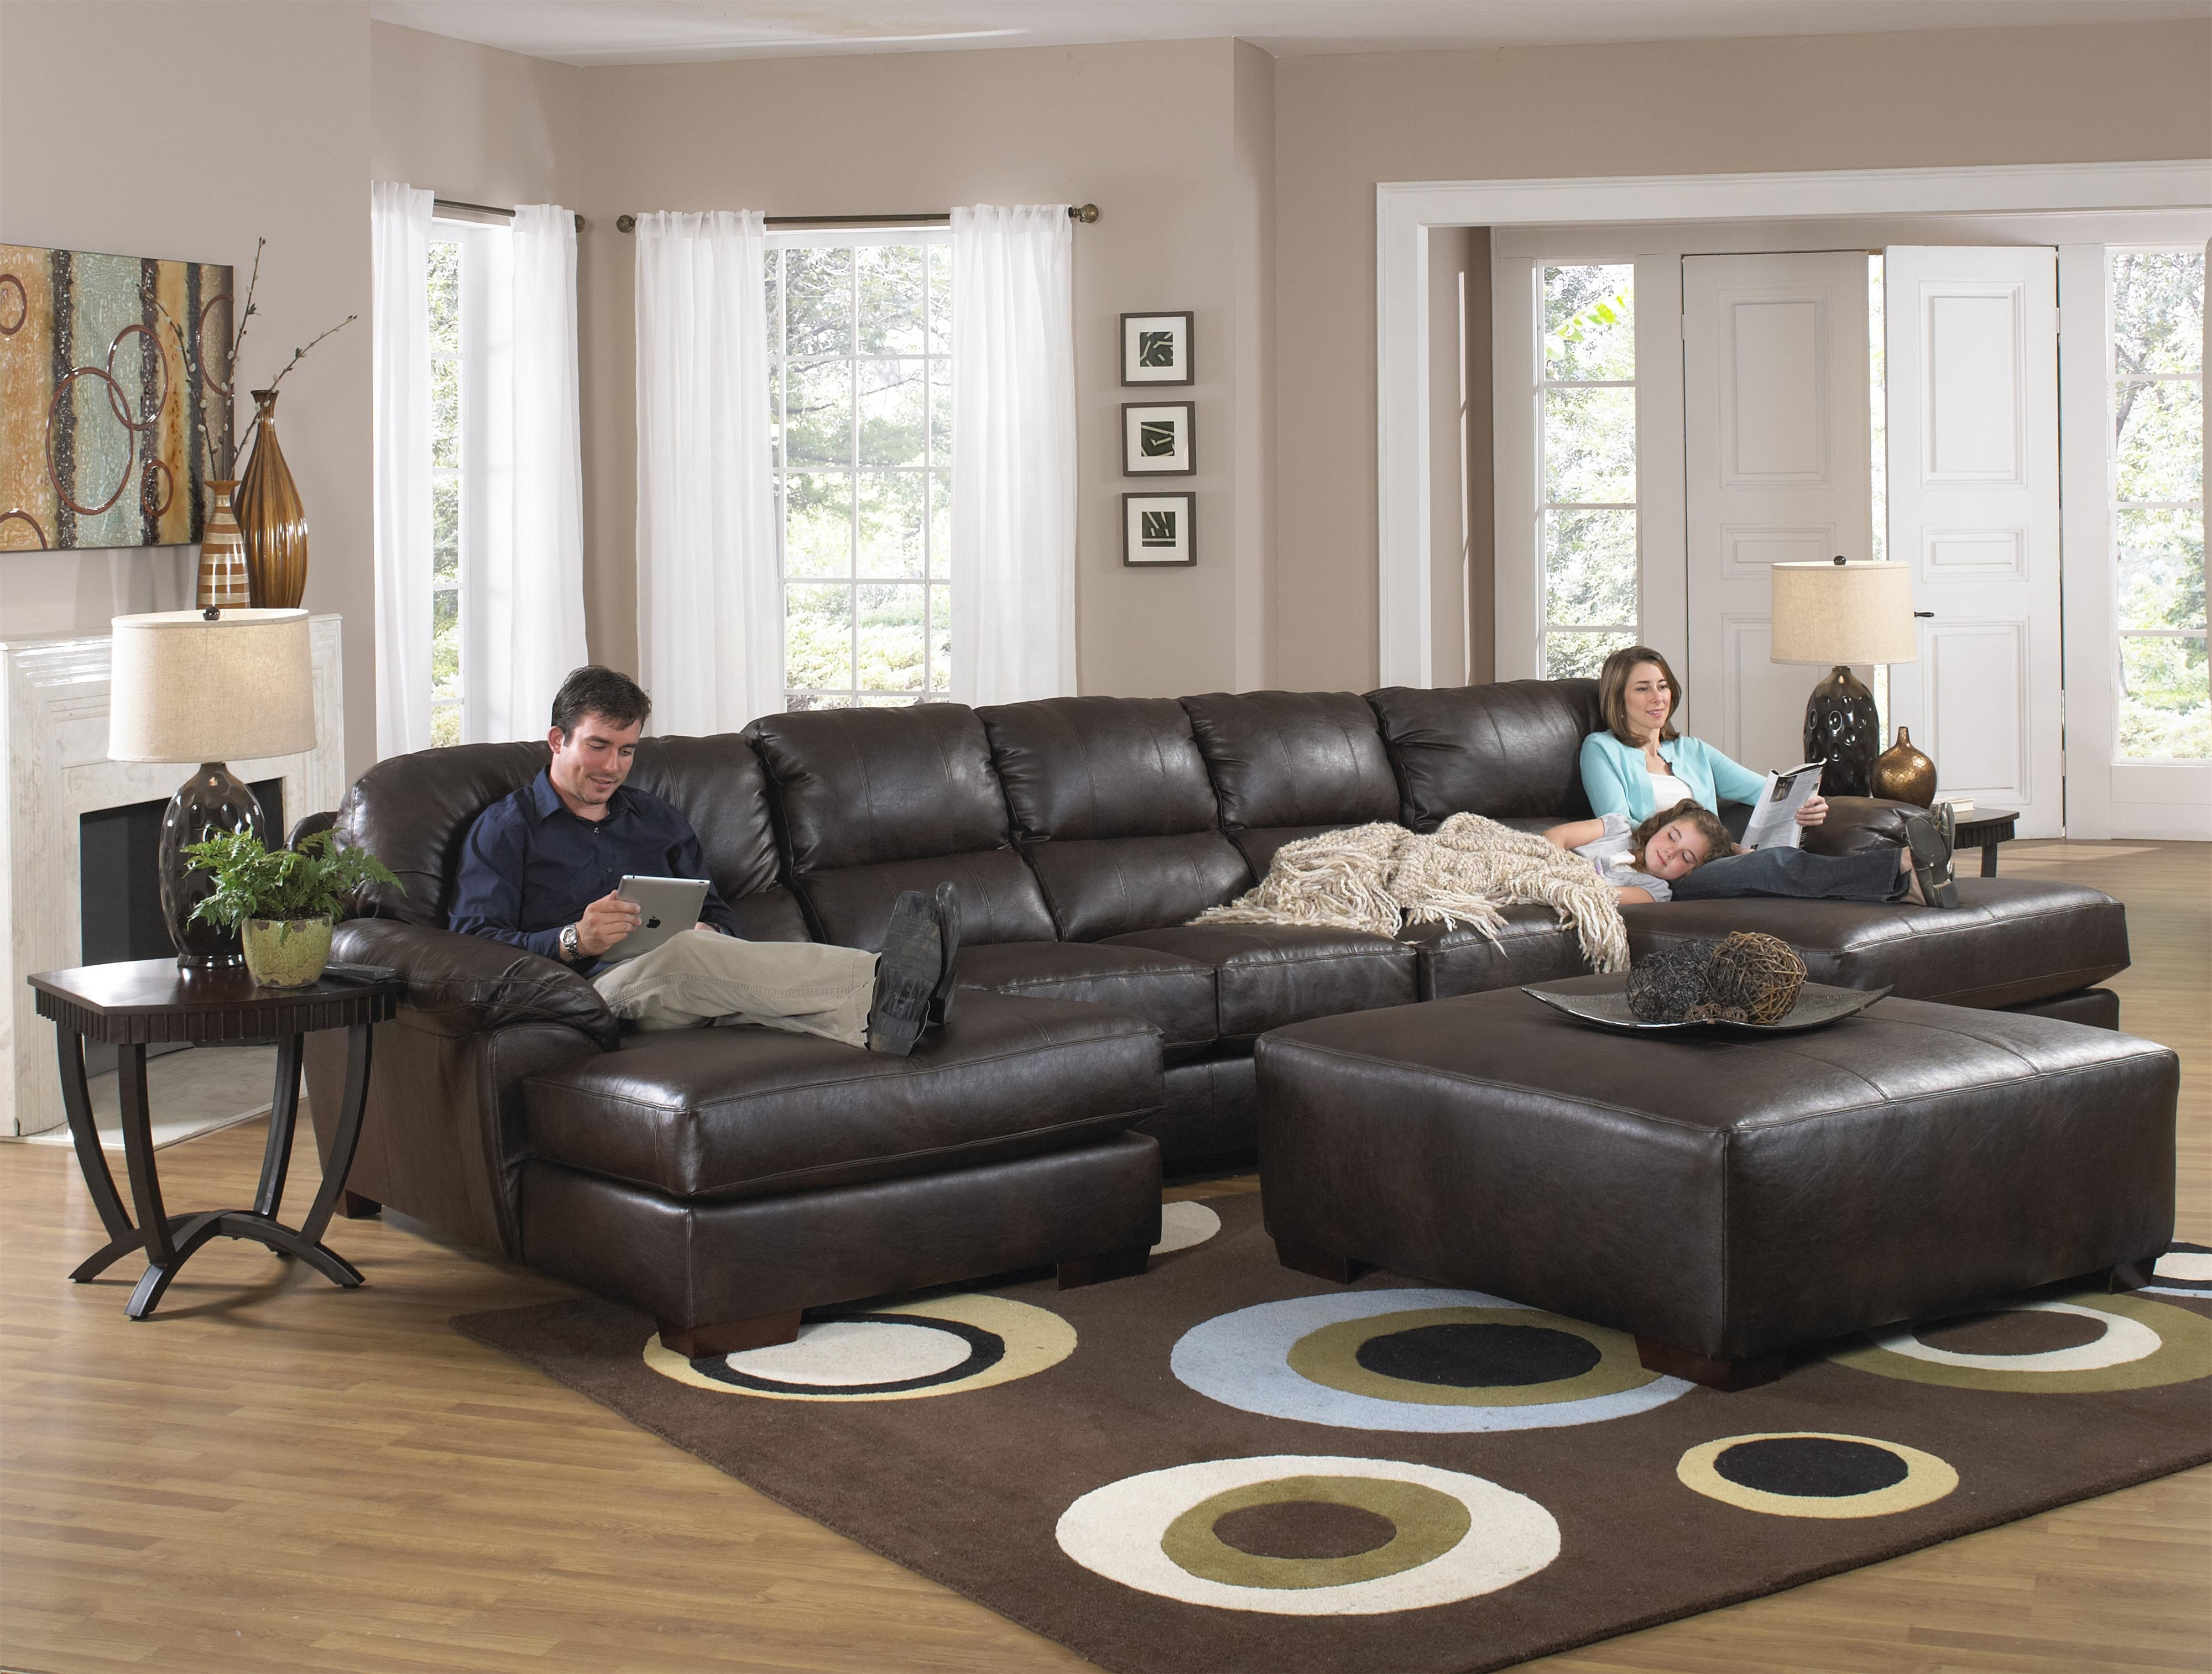 Two Chaise Sectional Sofa With Five Total Seatsjackson For Popular Dual Chaise Sectionals (View 15 of 15)